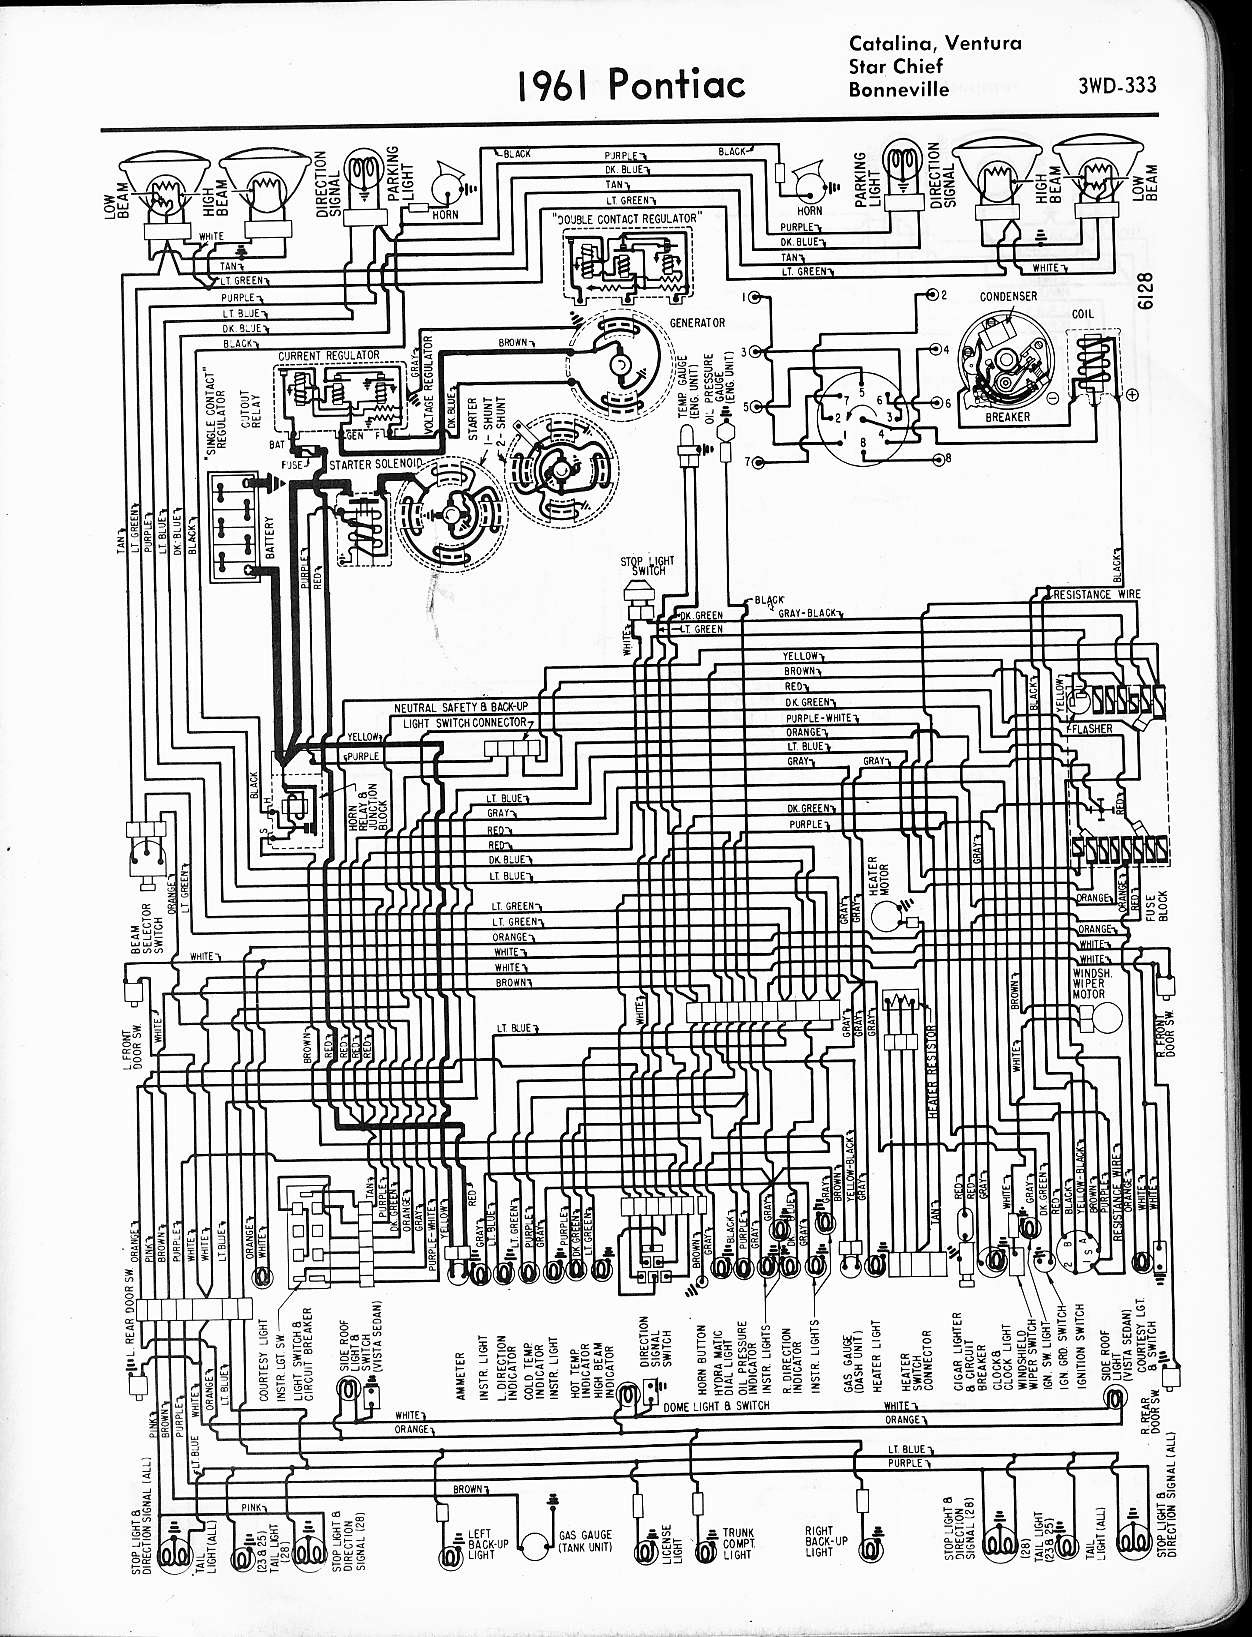 1956 Pontiac Wiring Diagram Wiring Diagram Series Series Pasticceriagele It